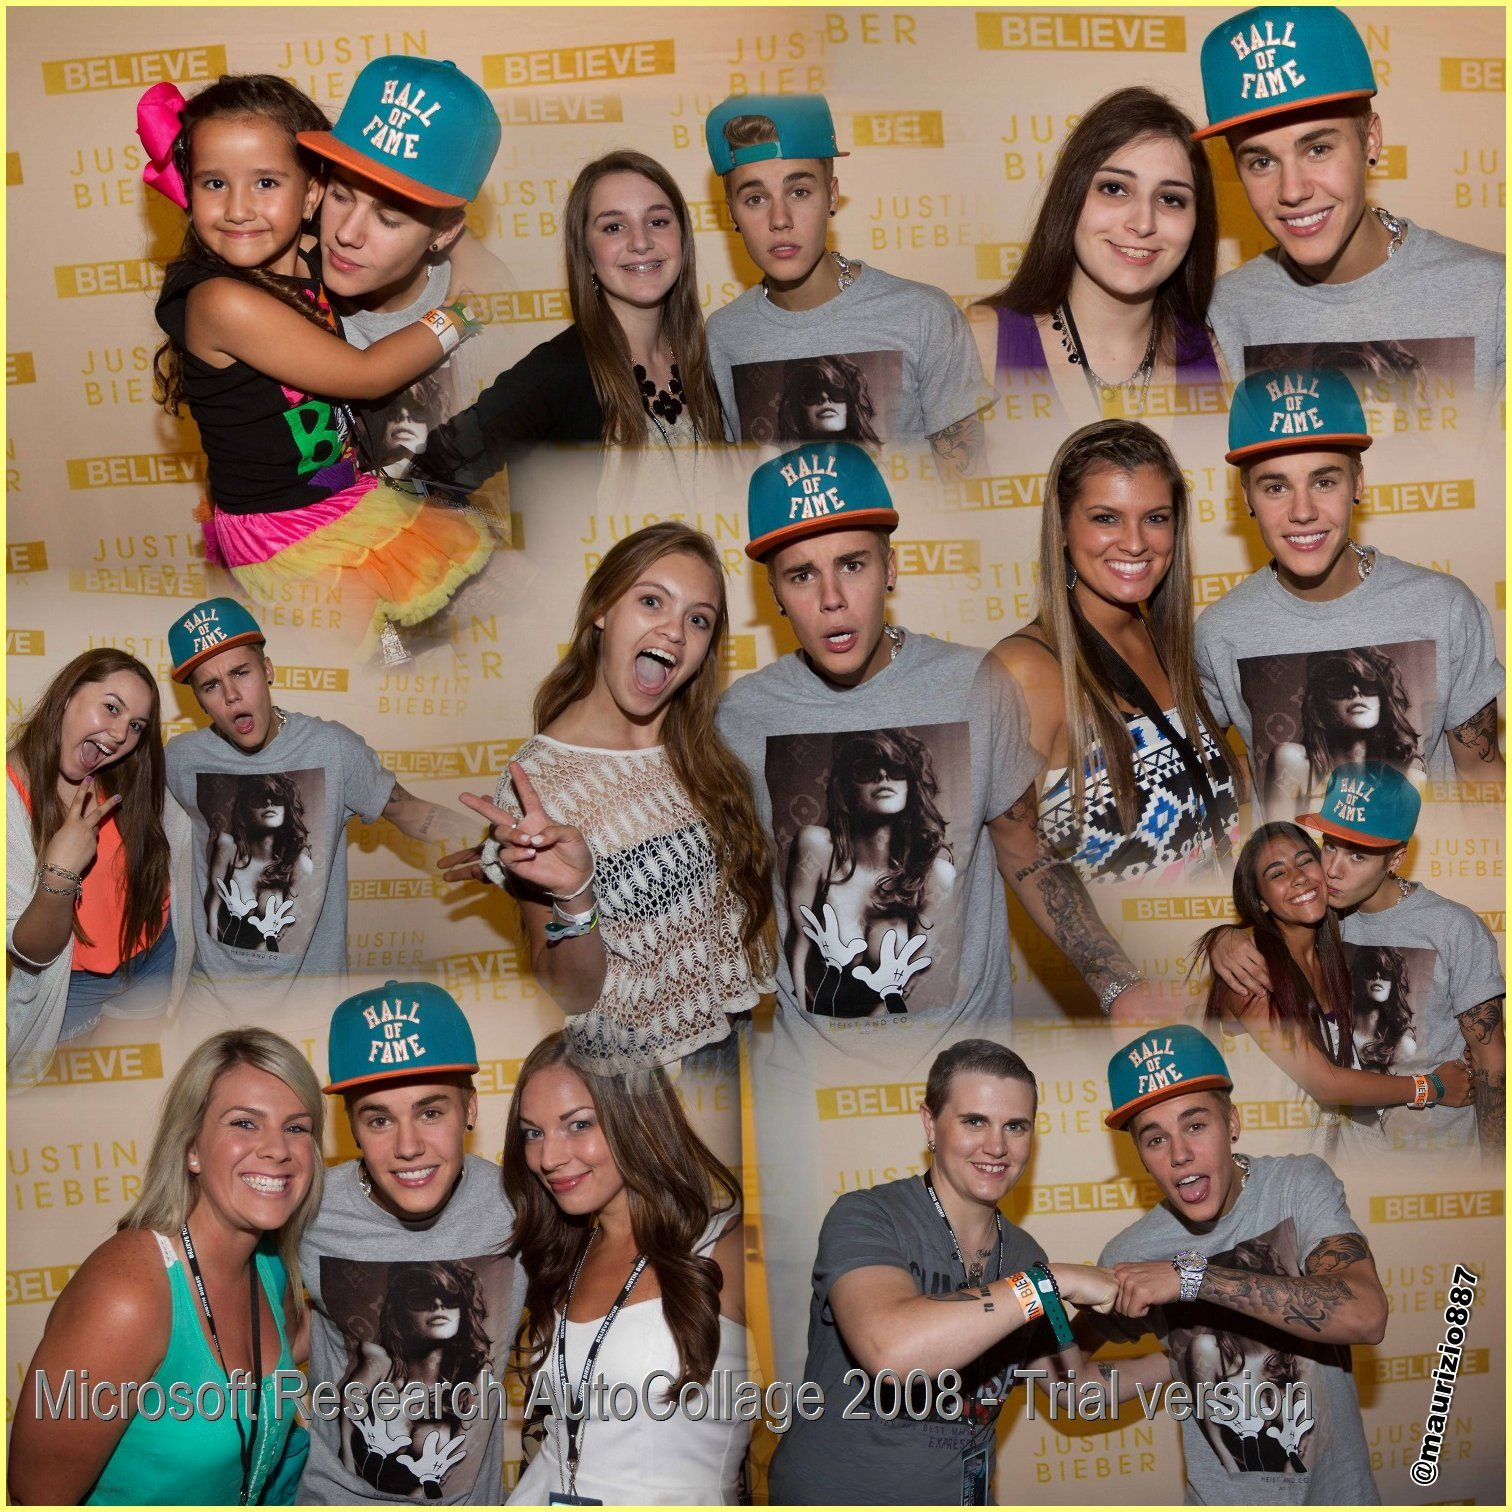 Justin Bieber Images Justin Bieber Meet Greet Dallas 2013 Hd